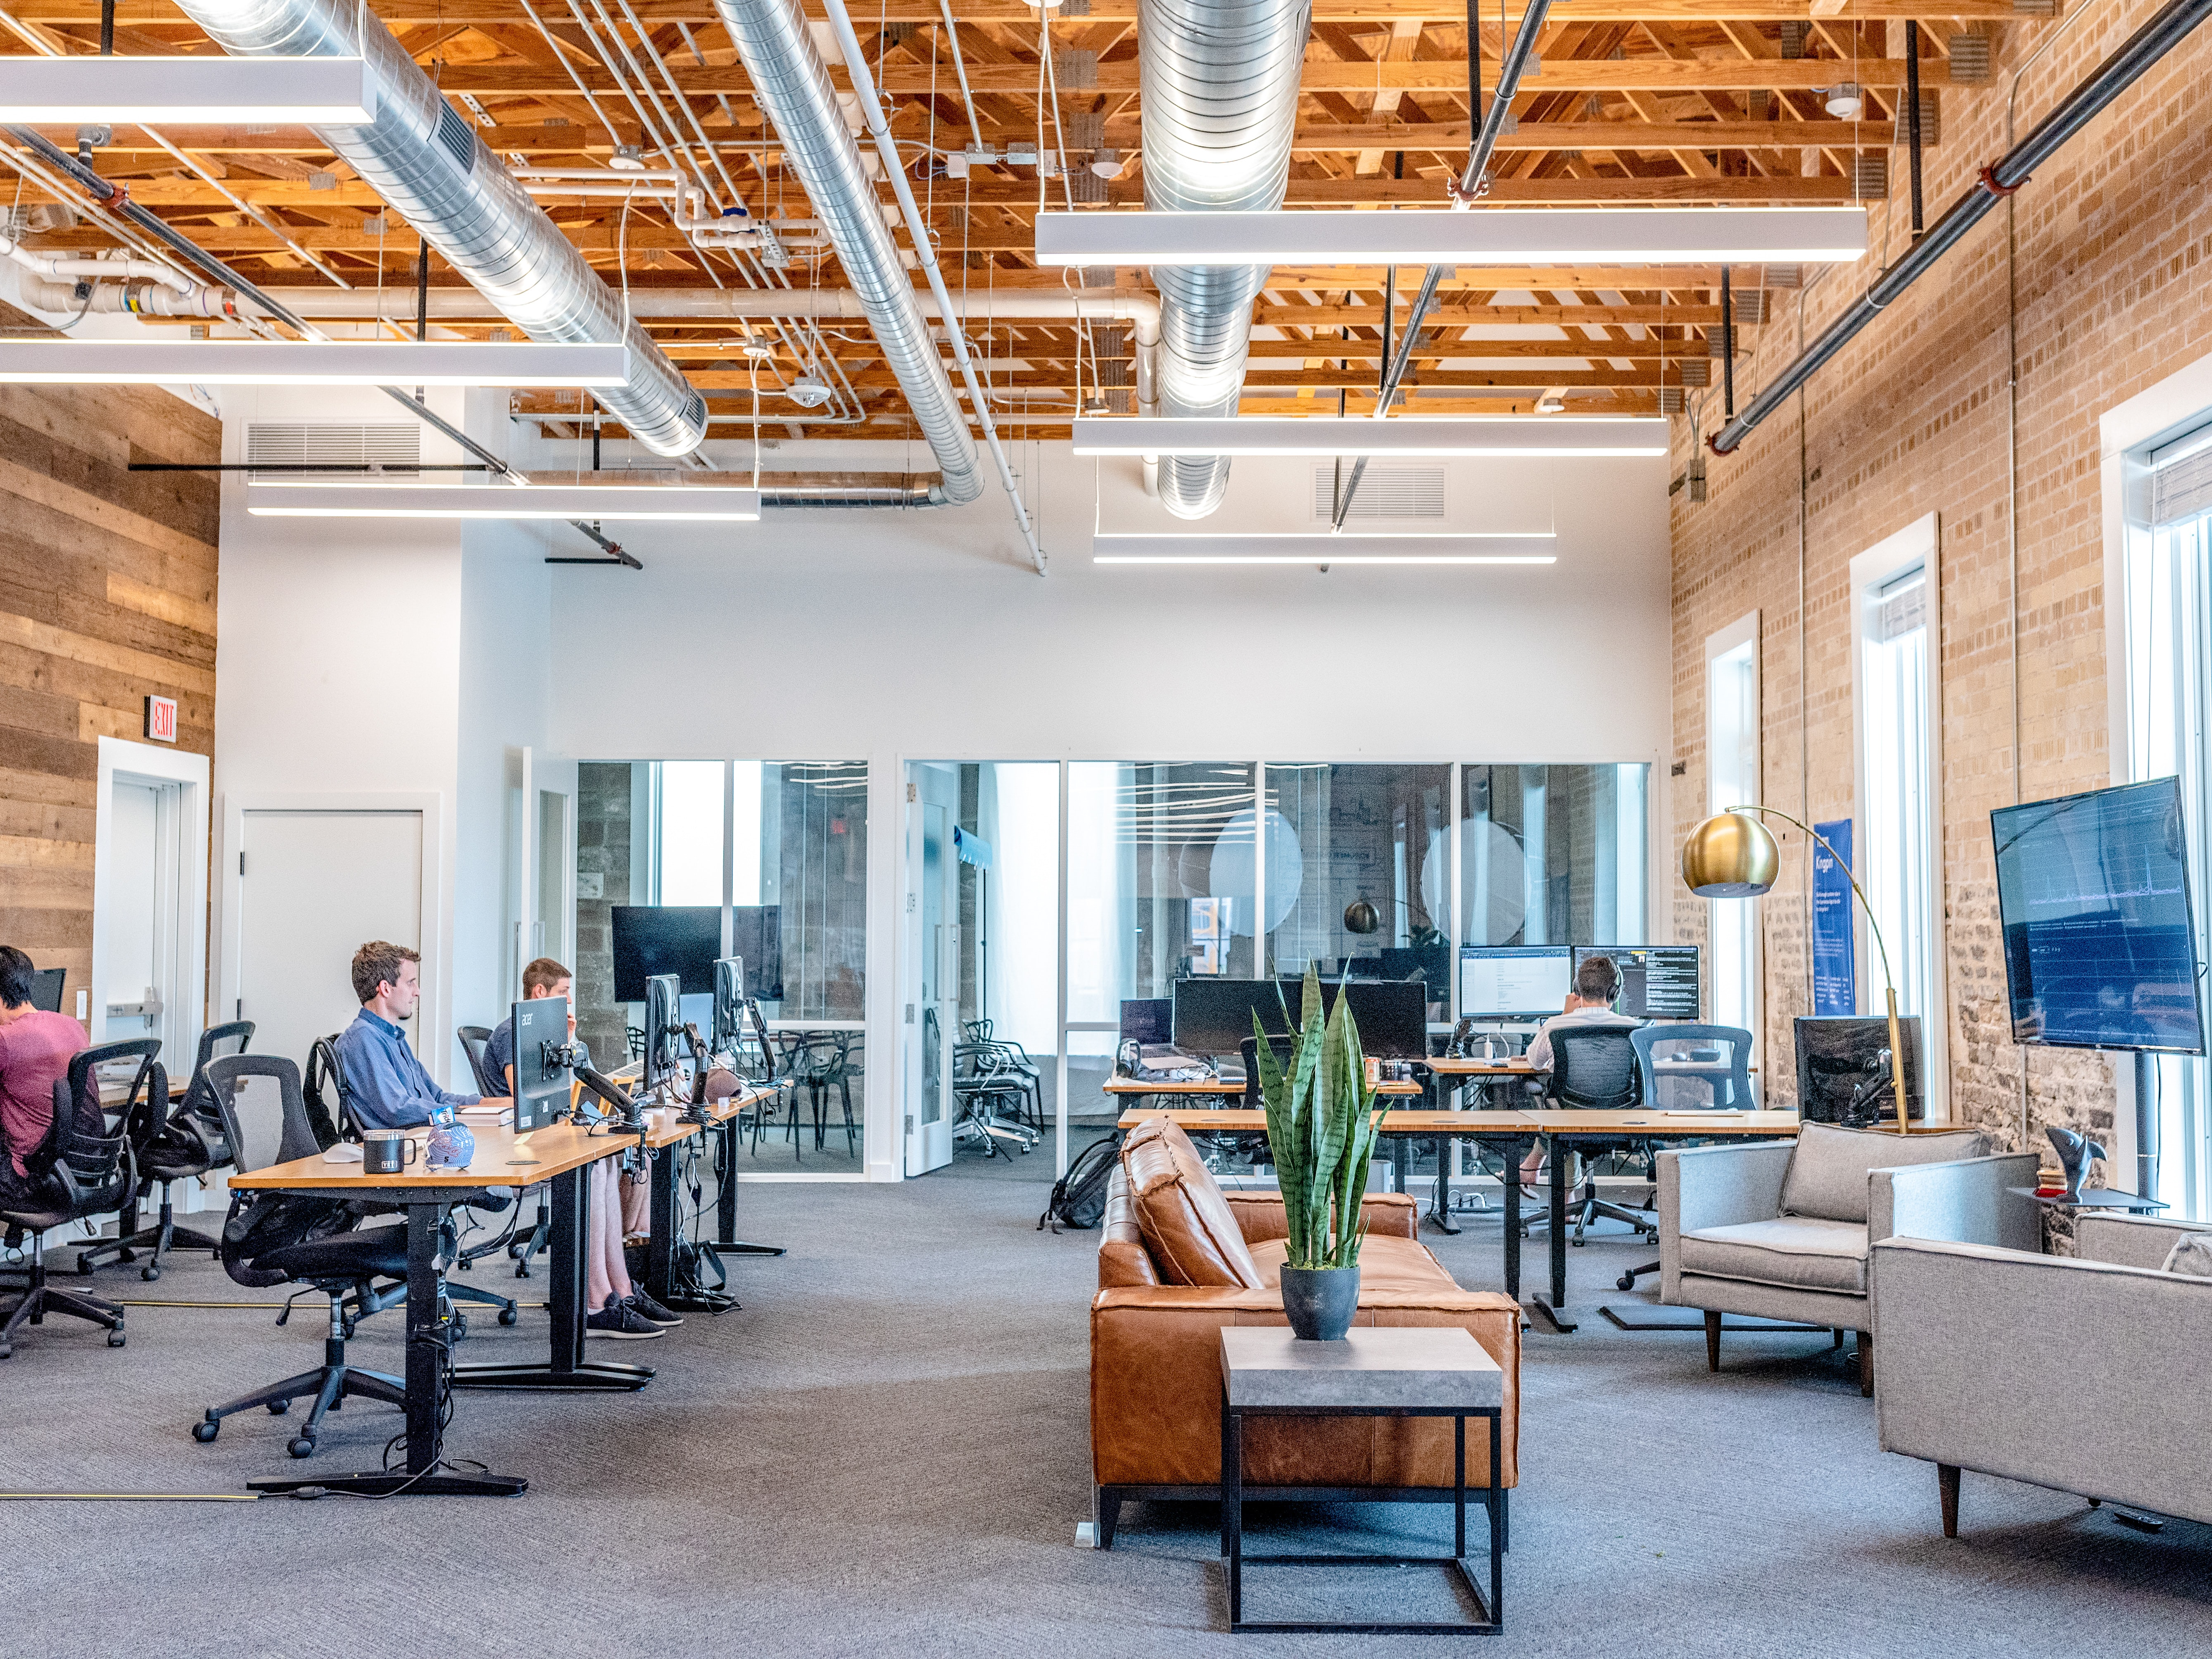 Machine Learning is Making Workplaces Safer